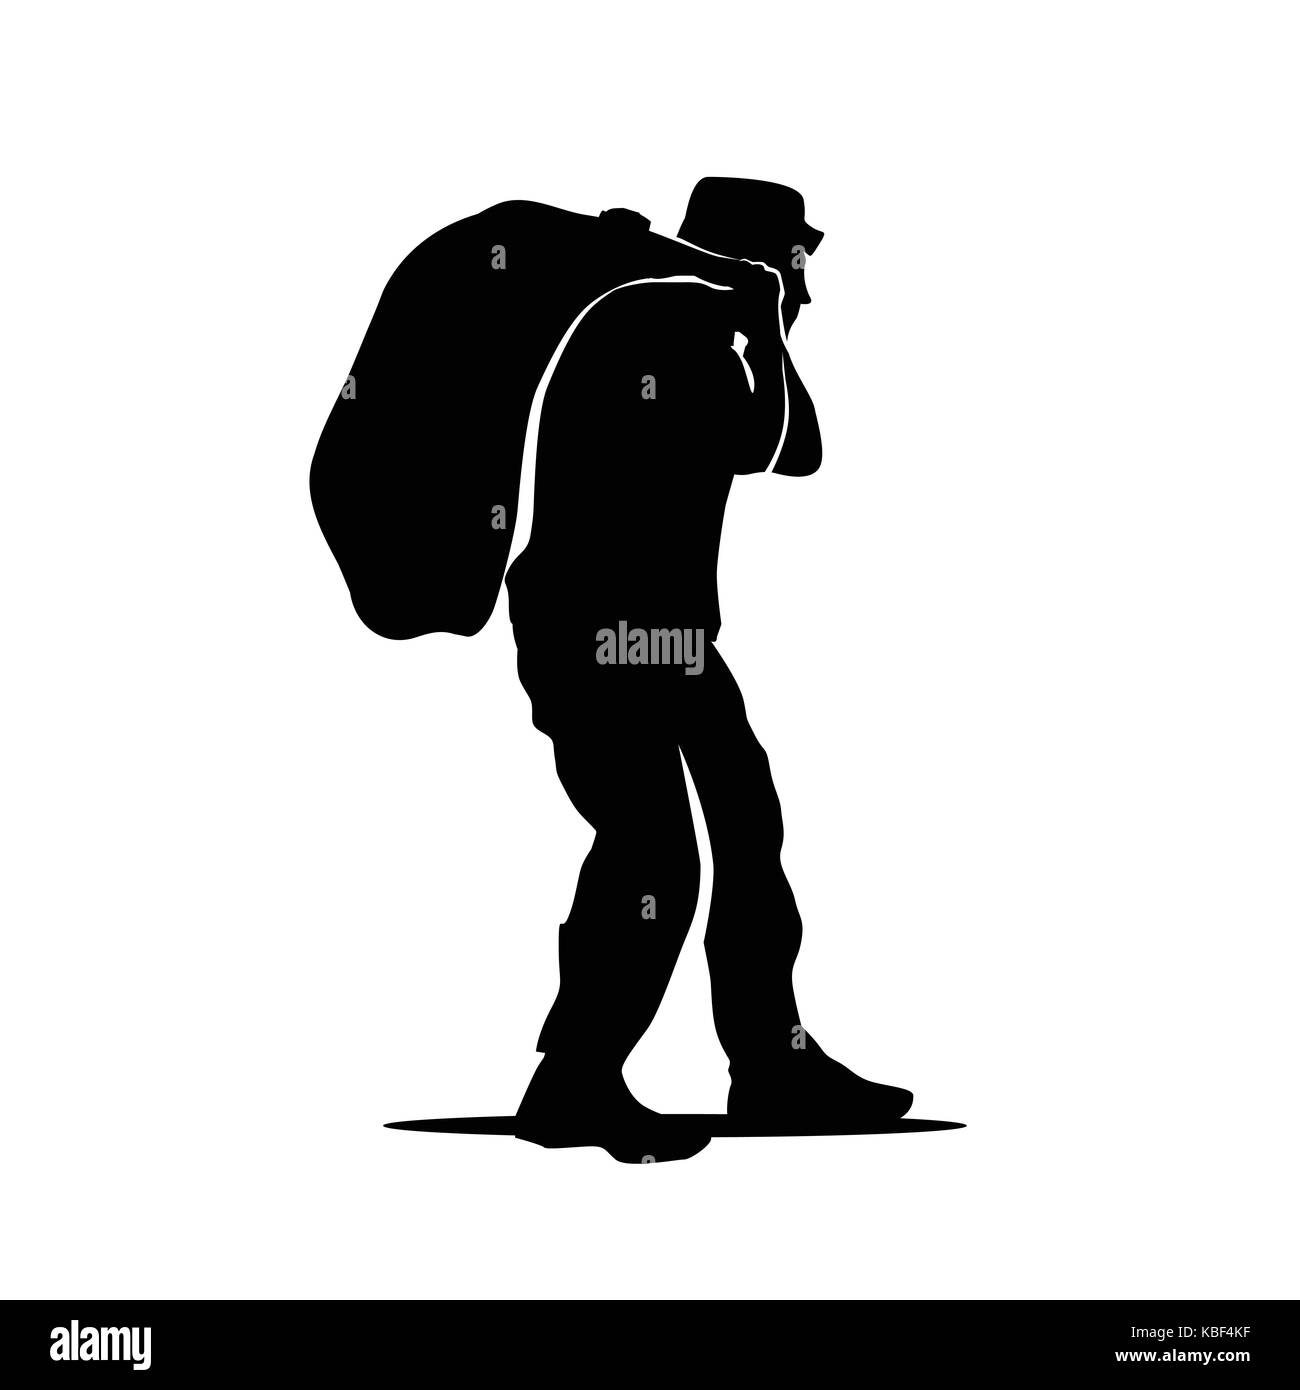 old man holds bag silhouette, a poor man holds bag, illustration design, isolated on white background. - Stock Image